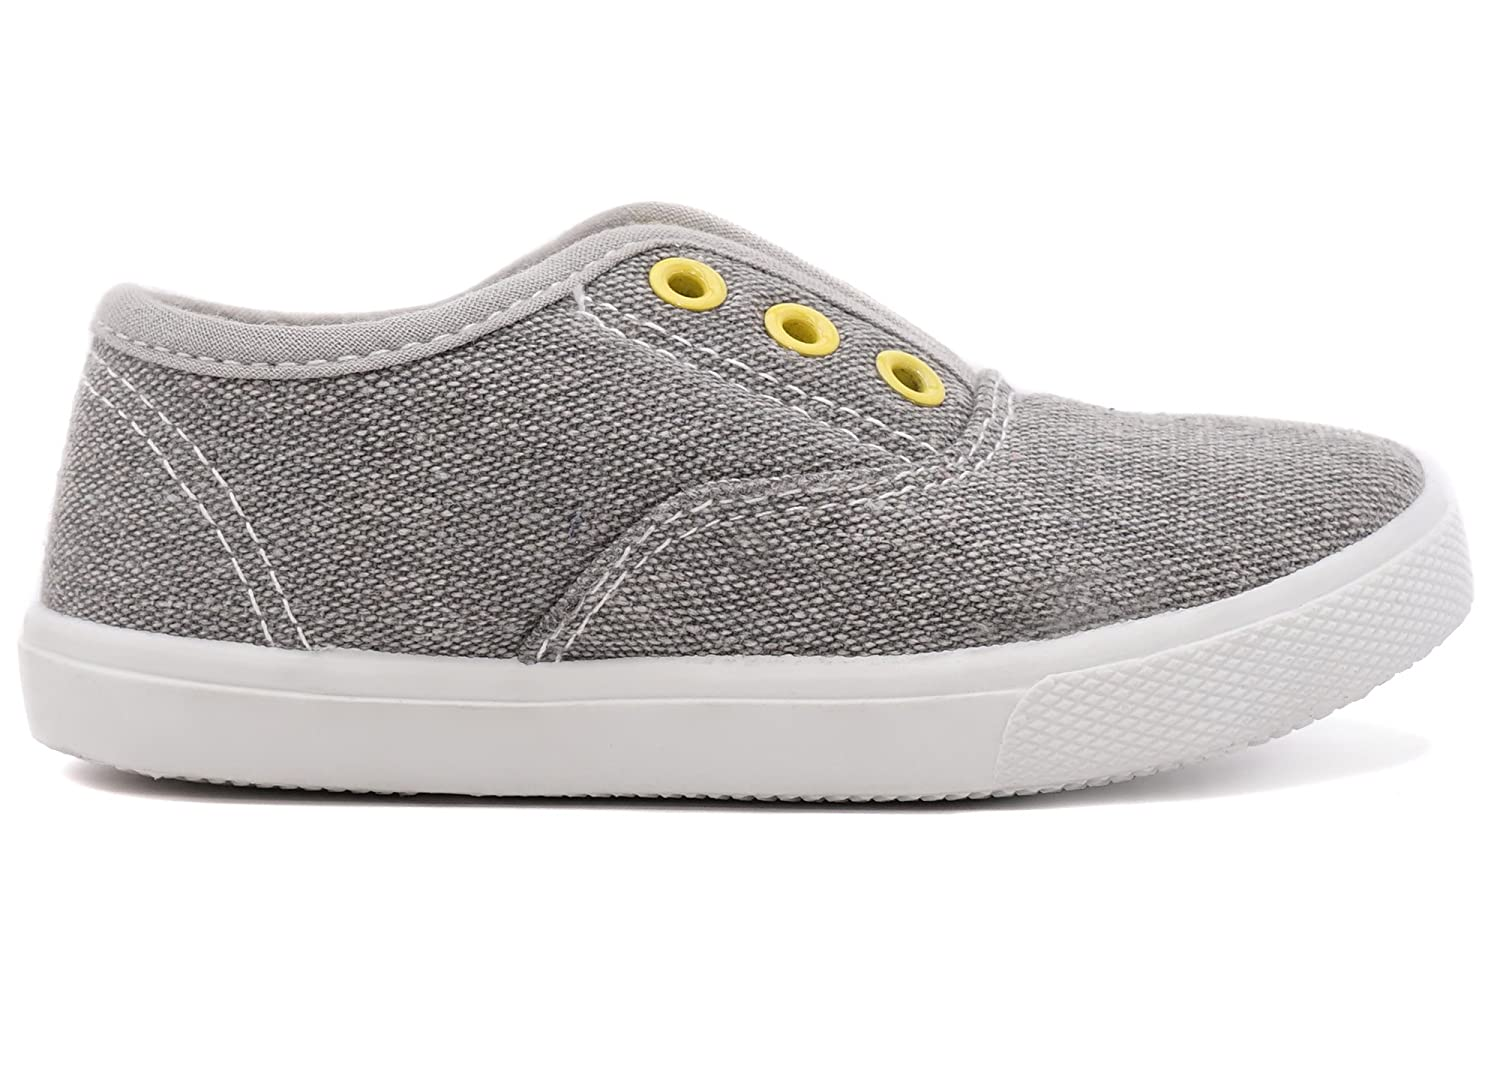 Charles Albert Slip-On Laceless Fashion Sneakers Sizes for Girls and Boys Little Kid//Big Kid Canvas Upper /& Rubber Sole